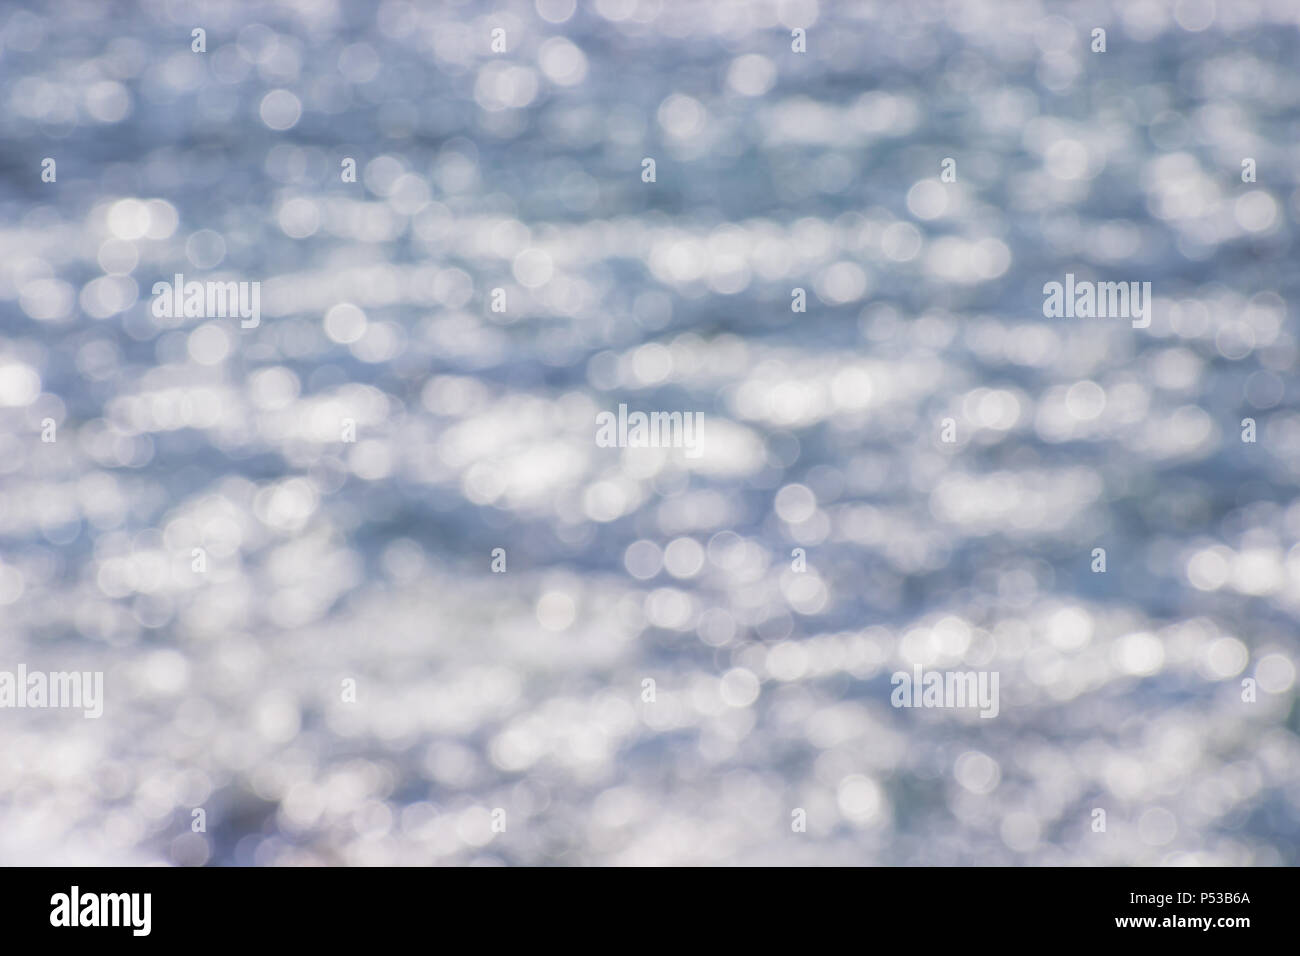 Beautiful abstract background bokeh sun light reflections on blue river surface water - Stock Image